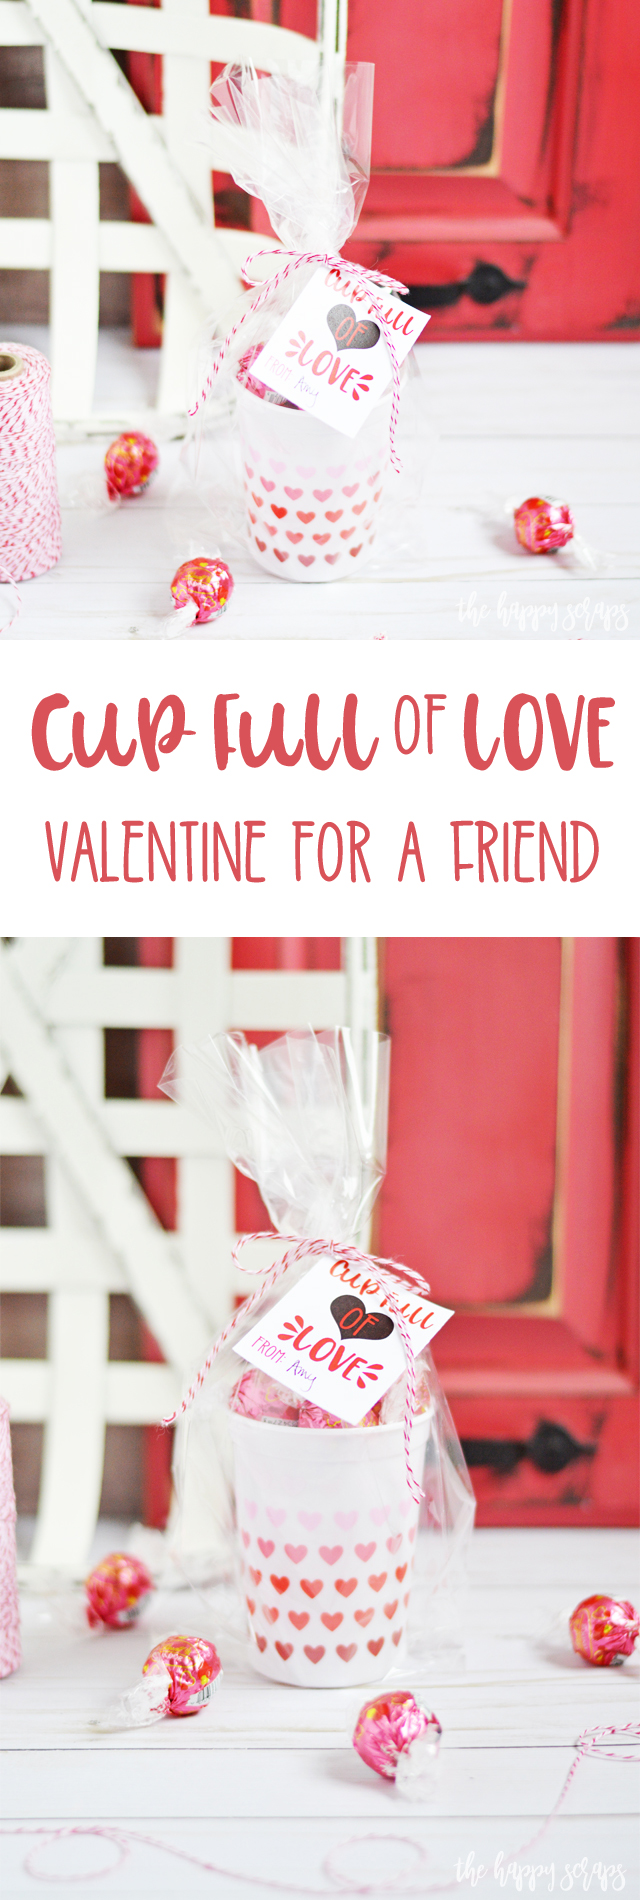 Anyone will love recieving this Cup Full of Love Valentine + Printable for Valentine's Day. Make them for friends, neighbors, kids or significant others.